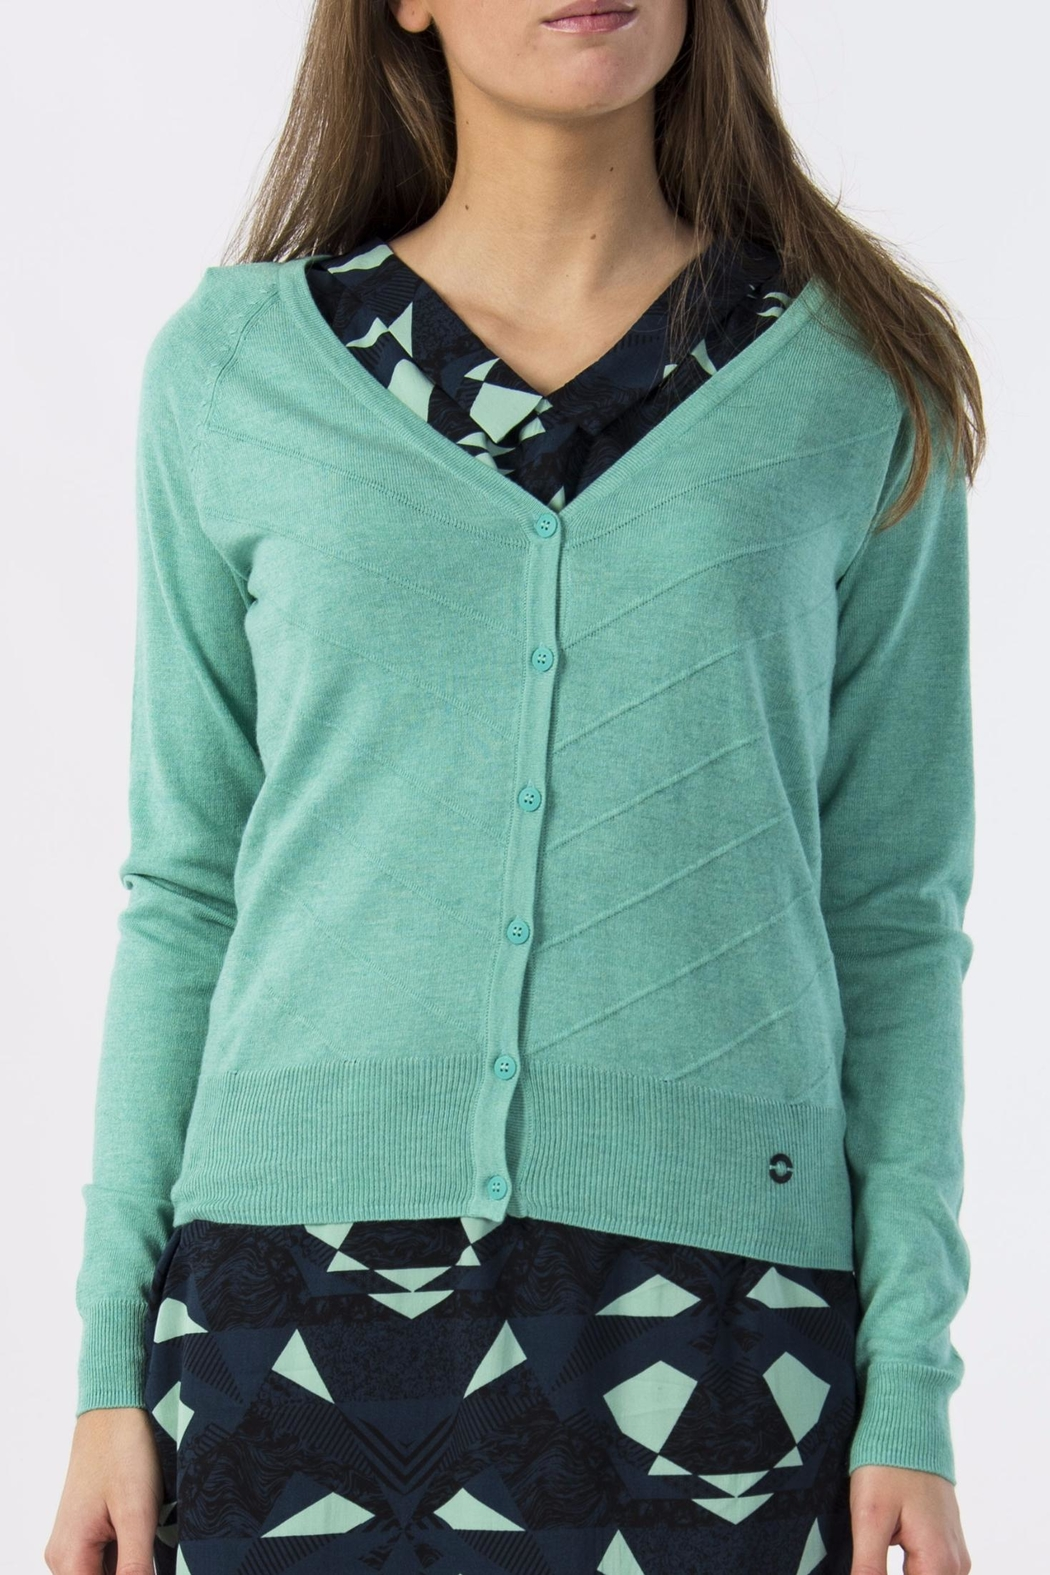 Skunkfunk Turquoise Cardigan from Edinburgh by Just g Boutique ...